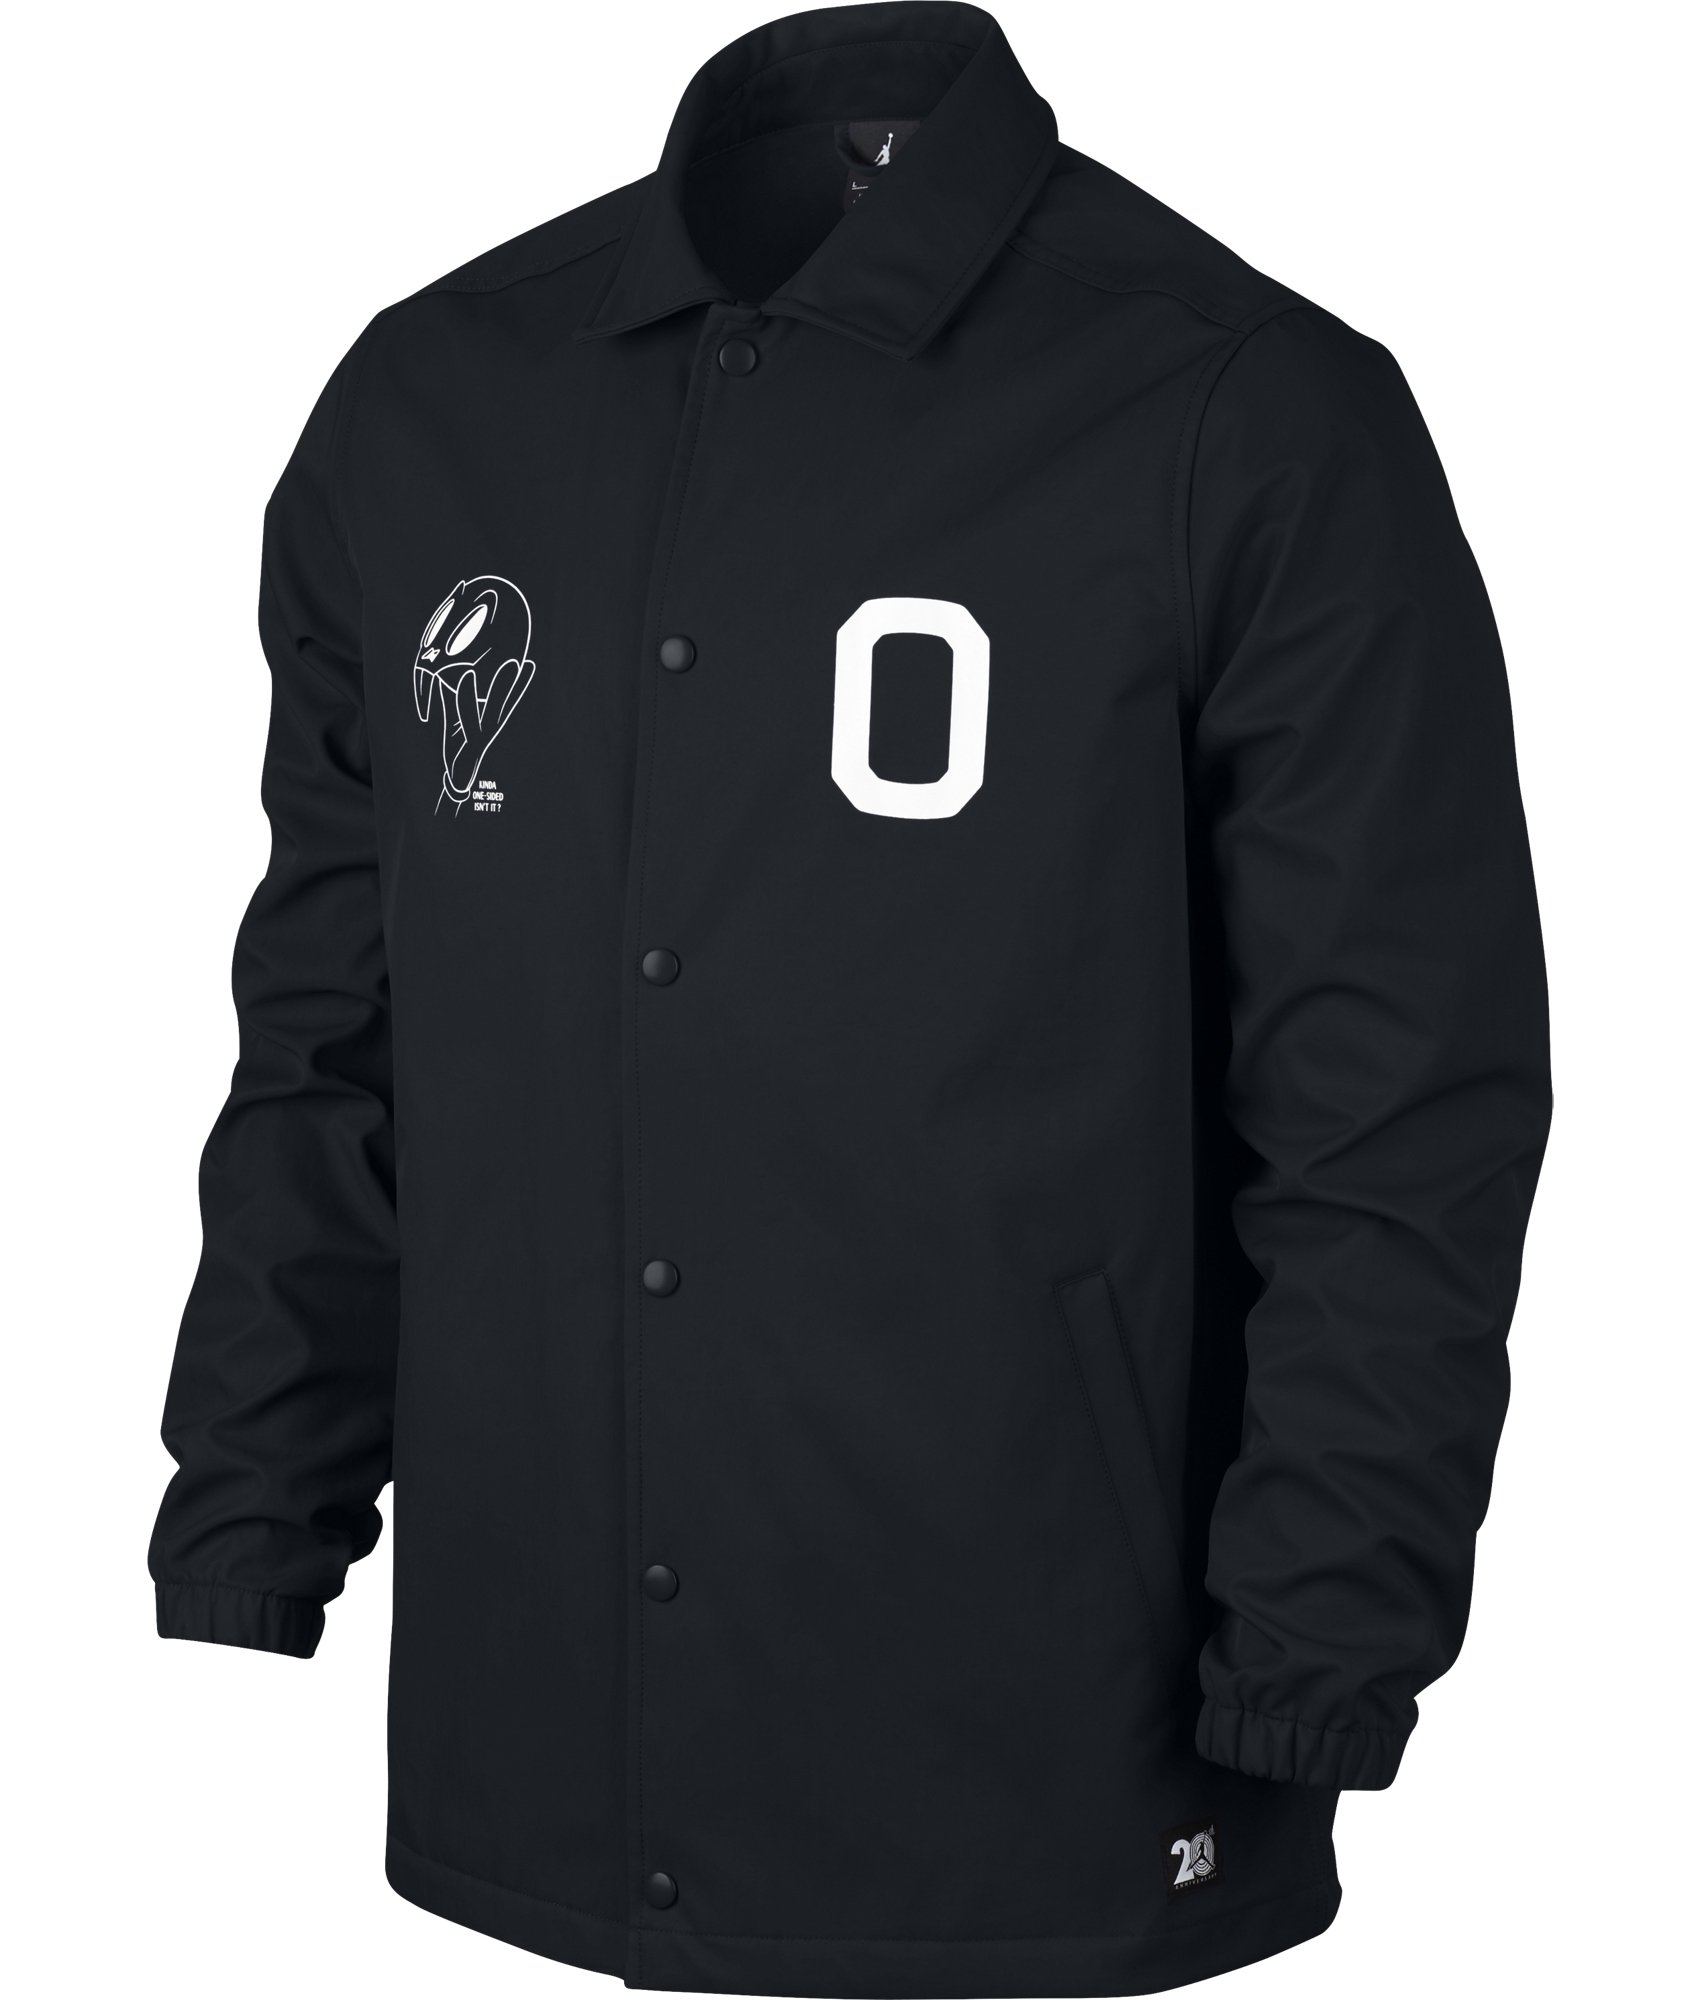 Nike Mens Air Jordan 11 Jacket Black/White X-Large by Jordan